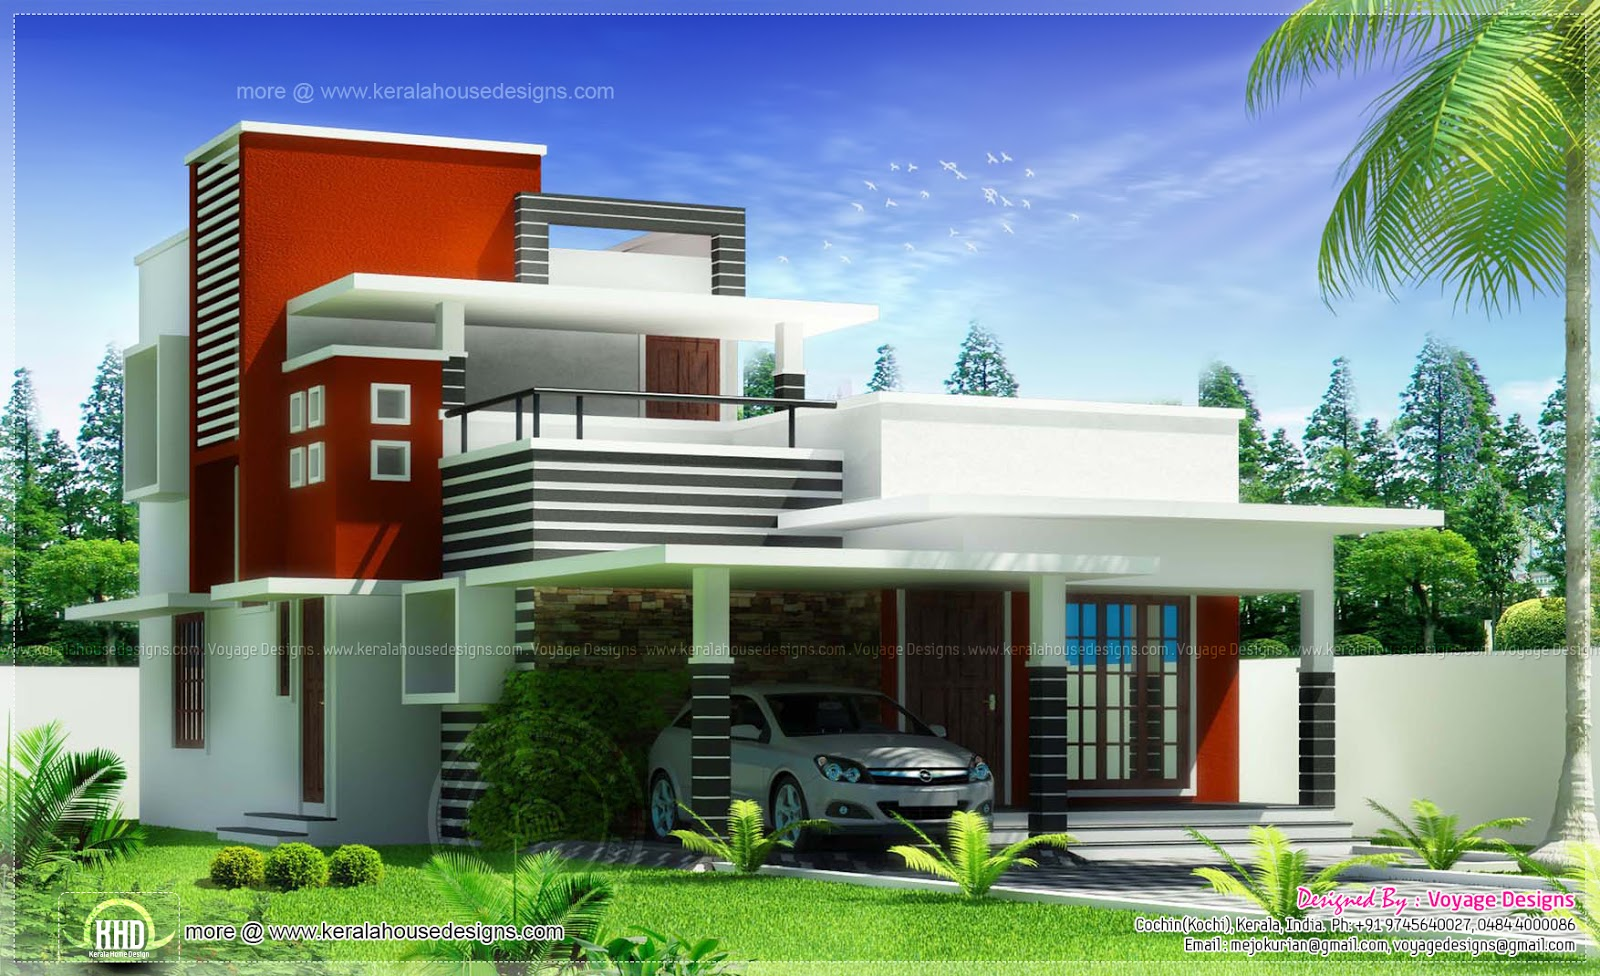 3 bed room contemporary style house home kerala plans - Contemporary home ...